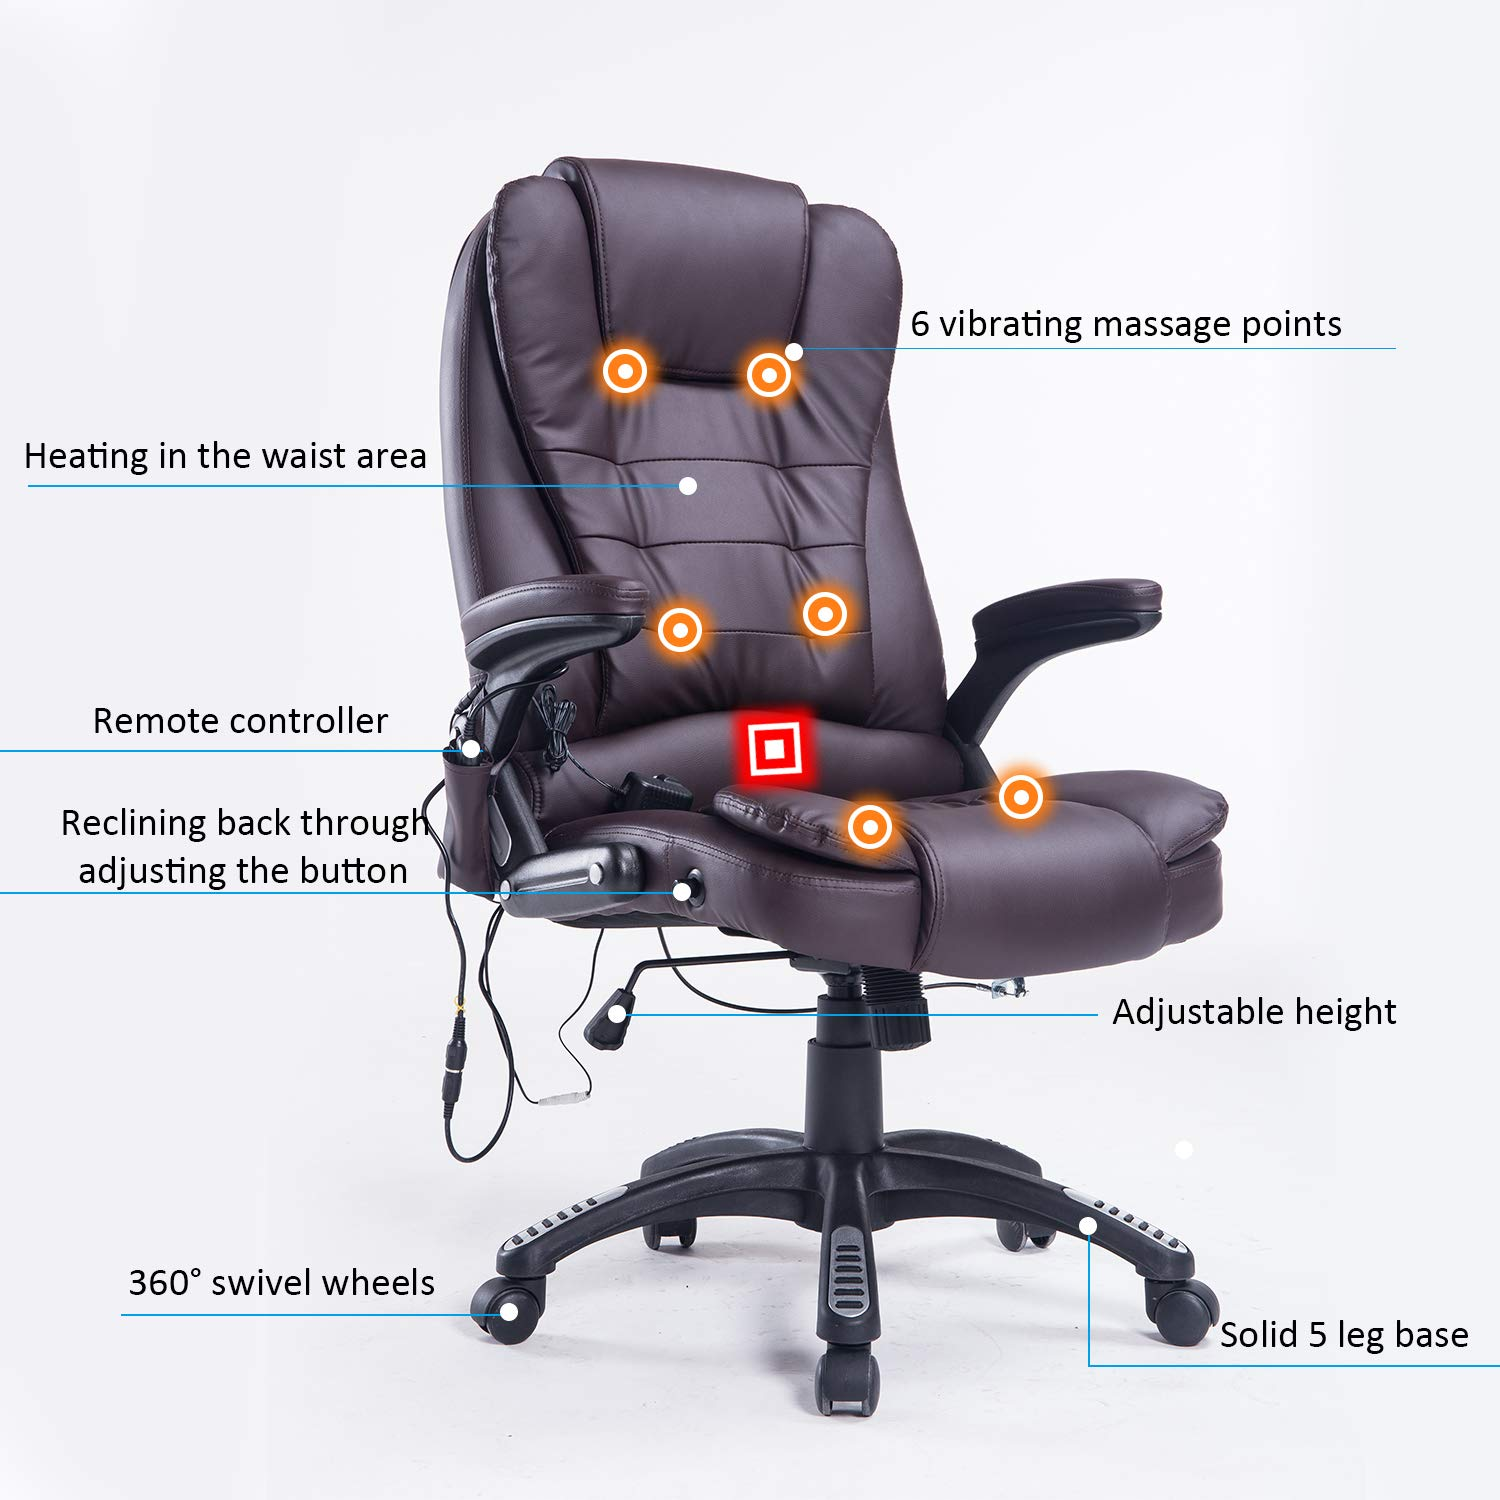 Home Office Computer Desk Massage Chair - Buy Online in United